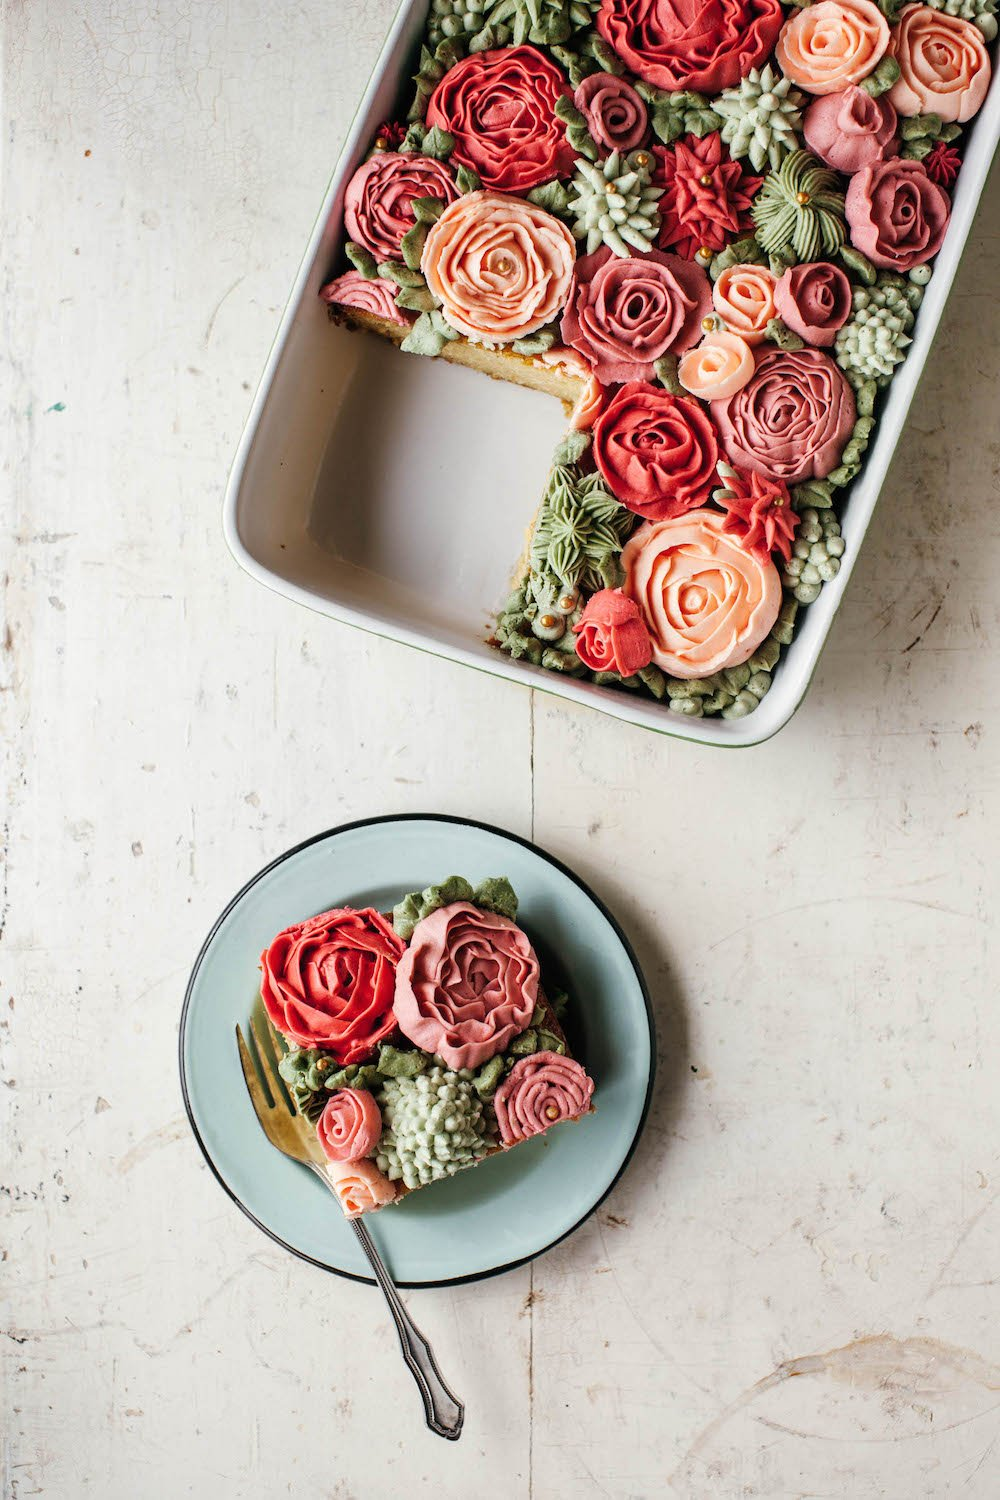 rose cake by molly yeh